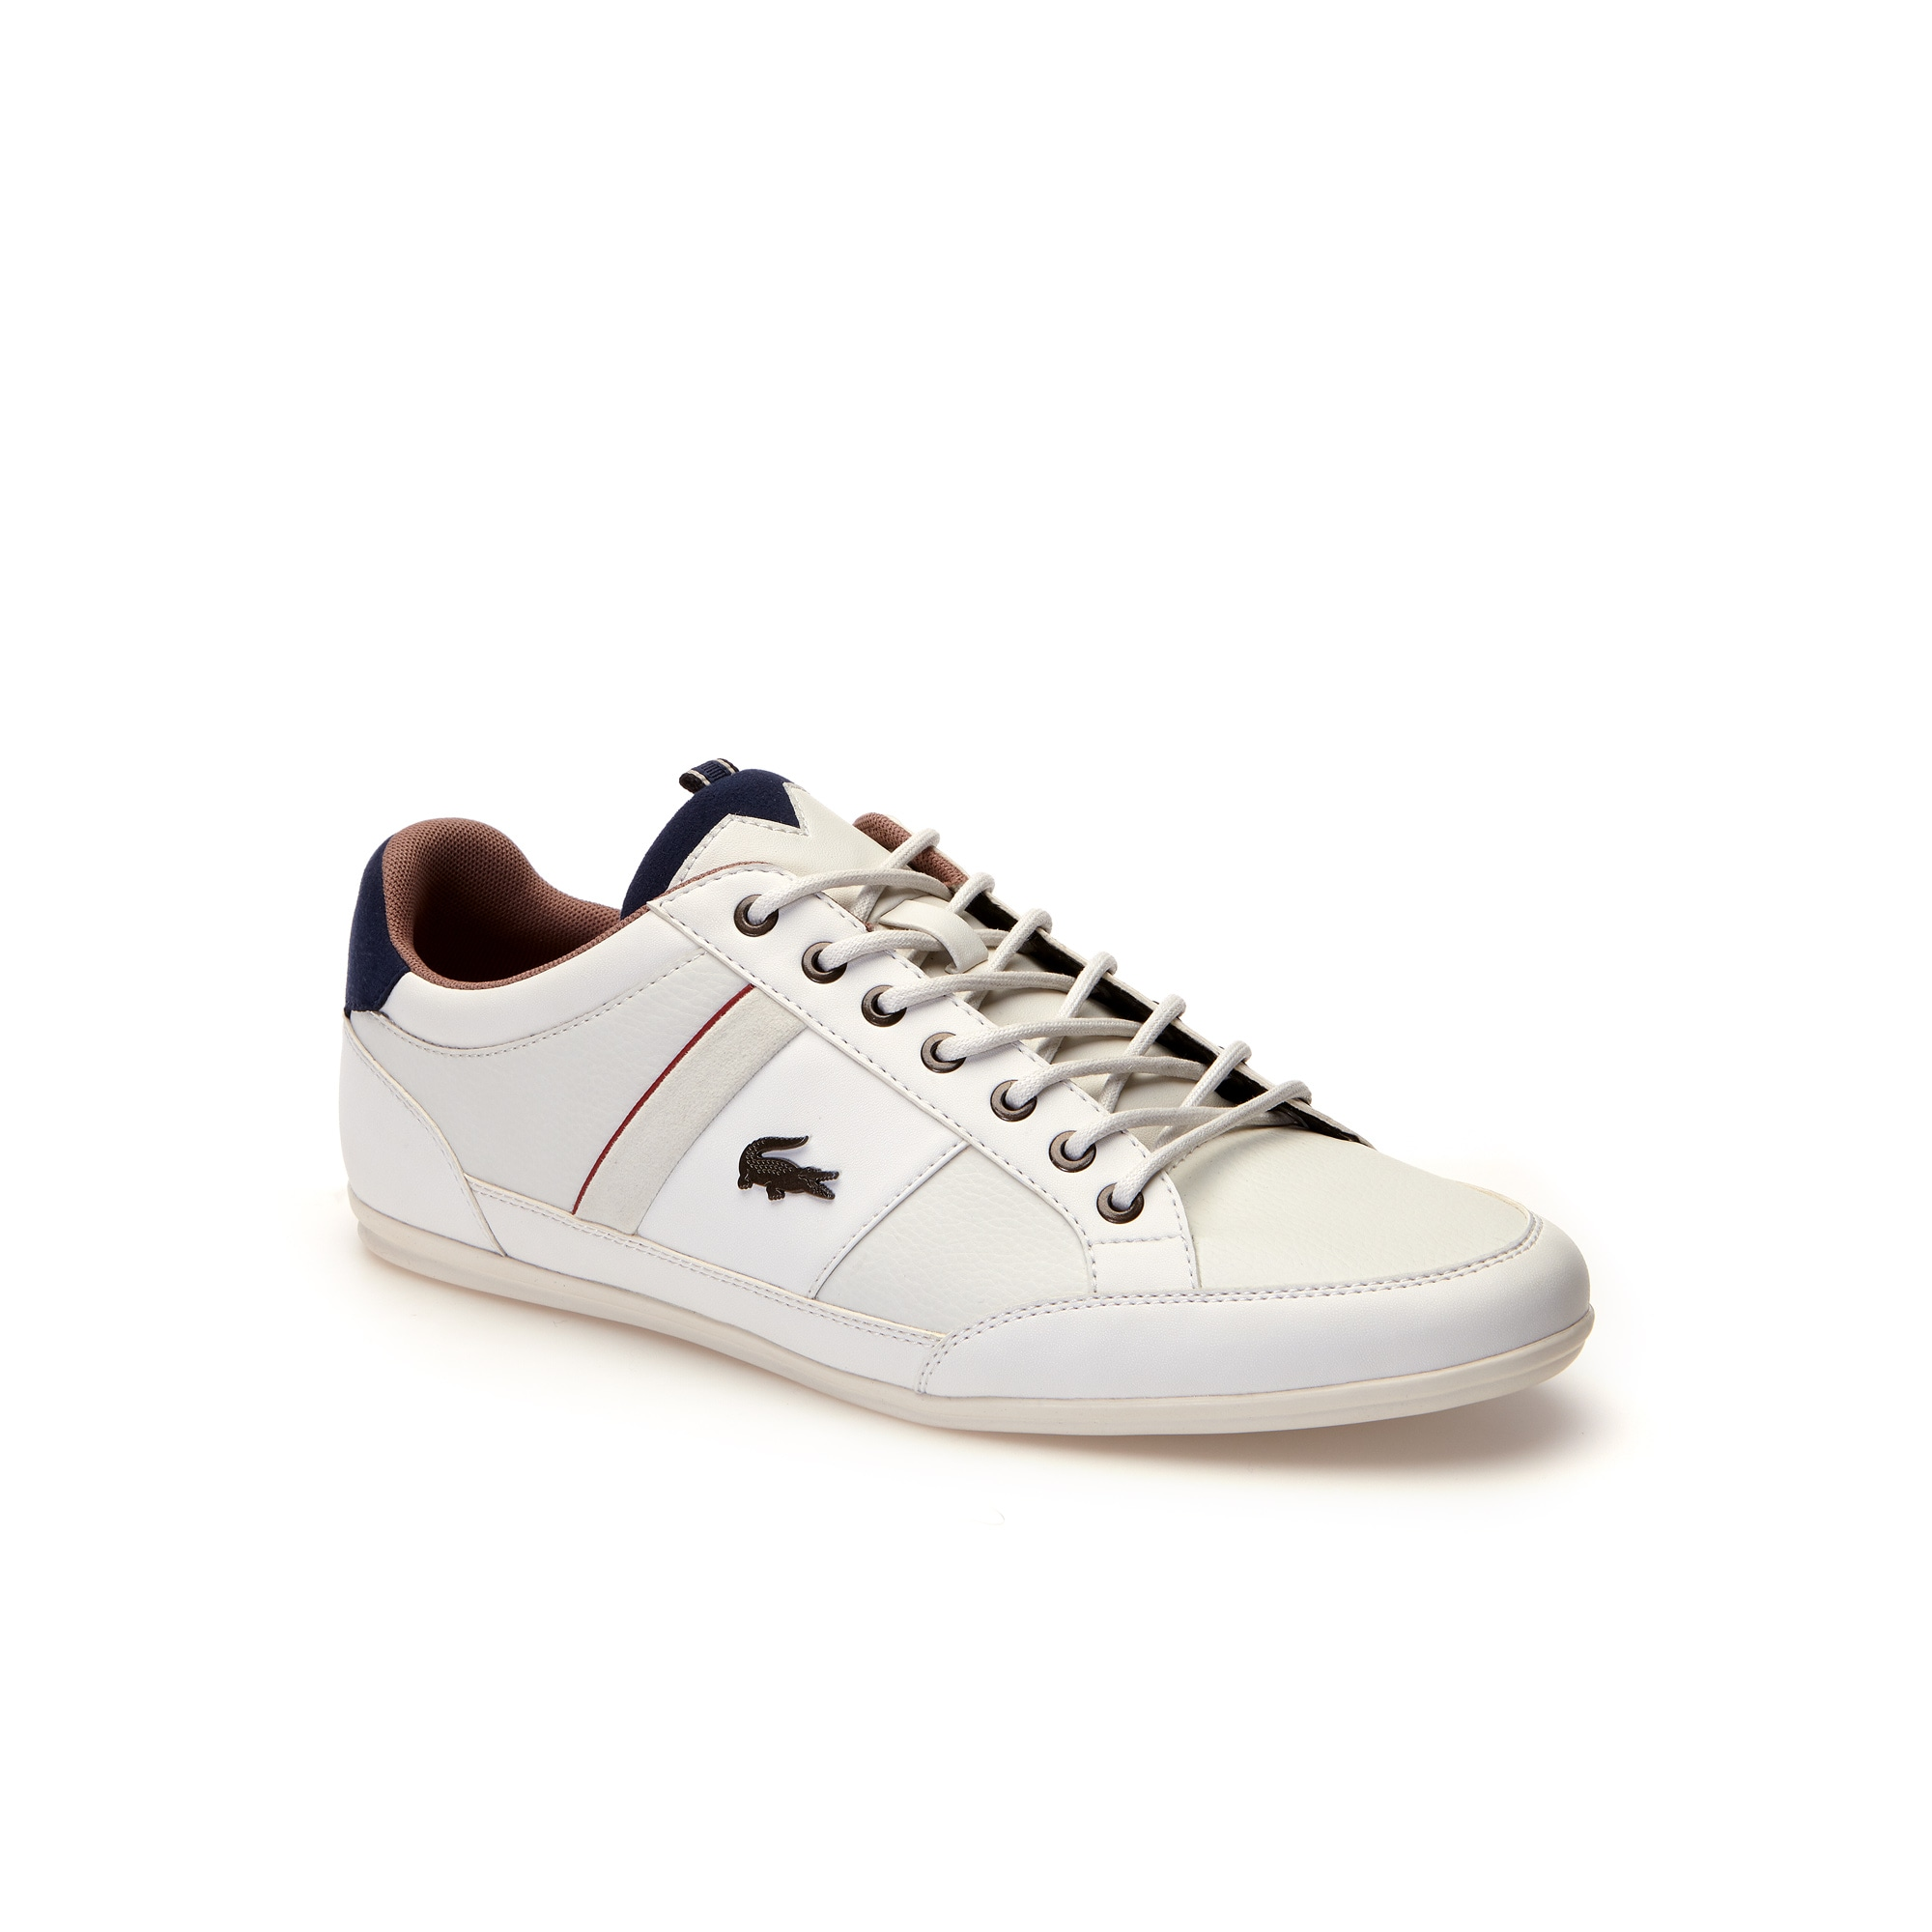 Men's Chaymon Nappa Leather Trainers